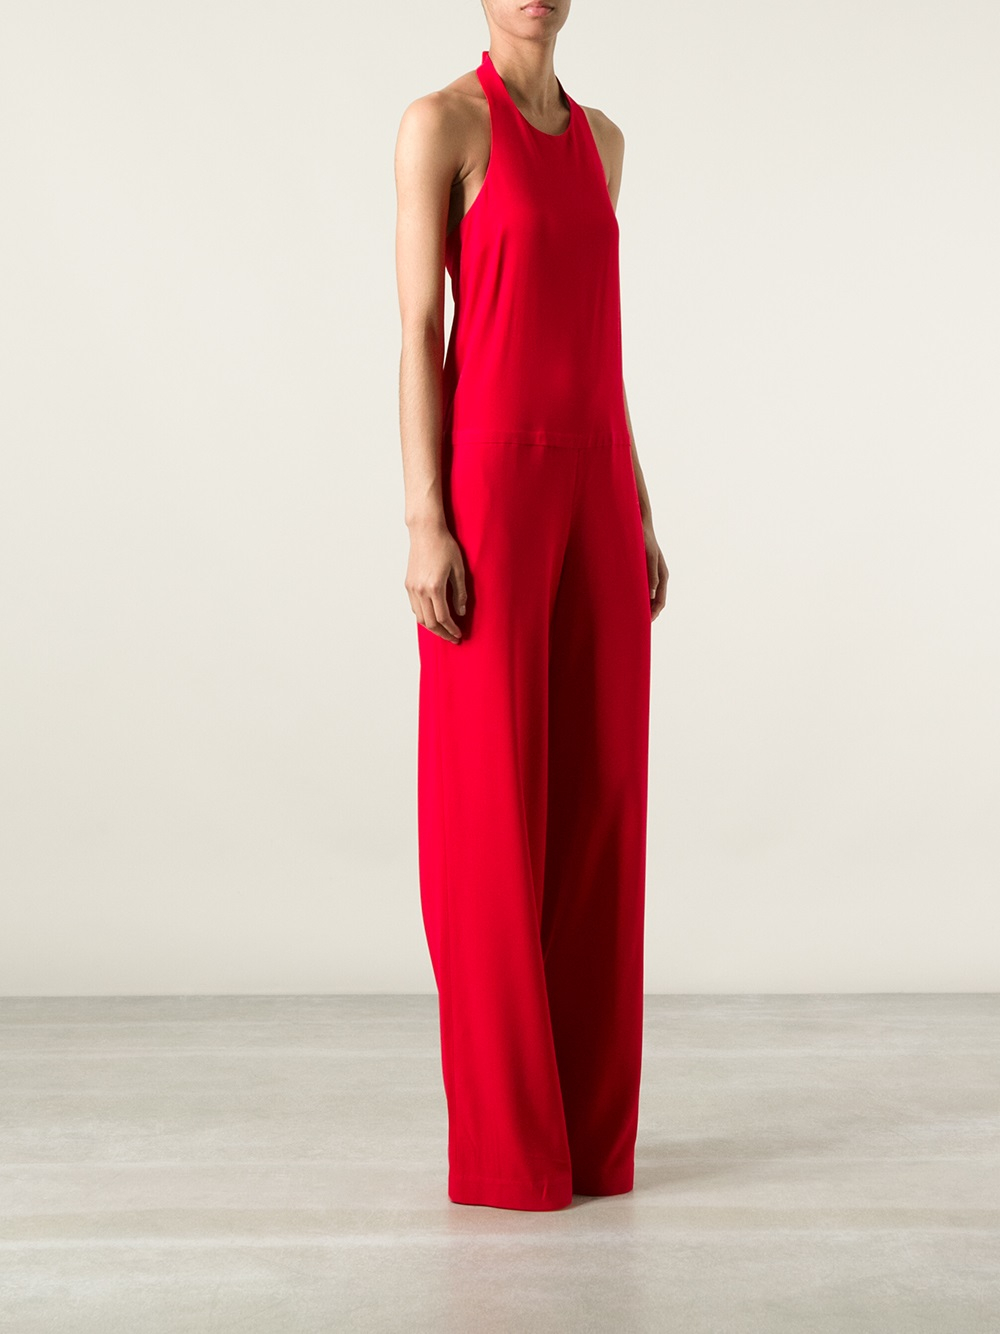 Normaluisa Sleeveless Jumpsuit in Red | Lyst